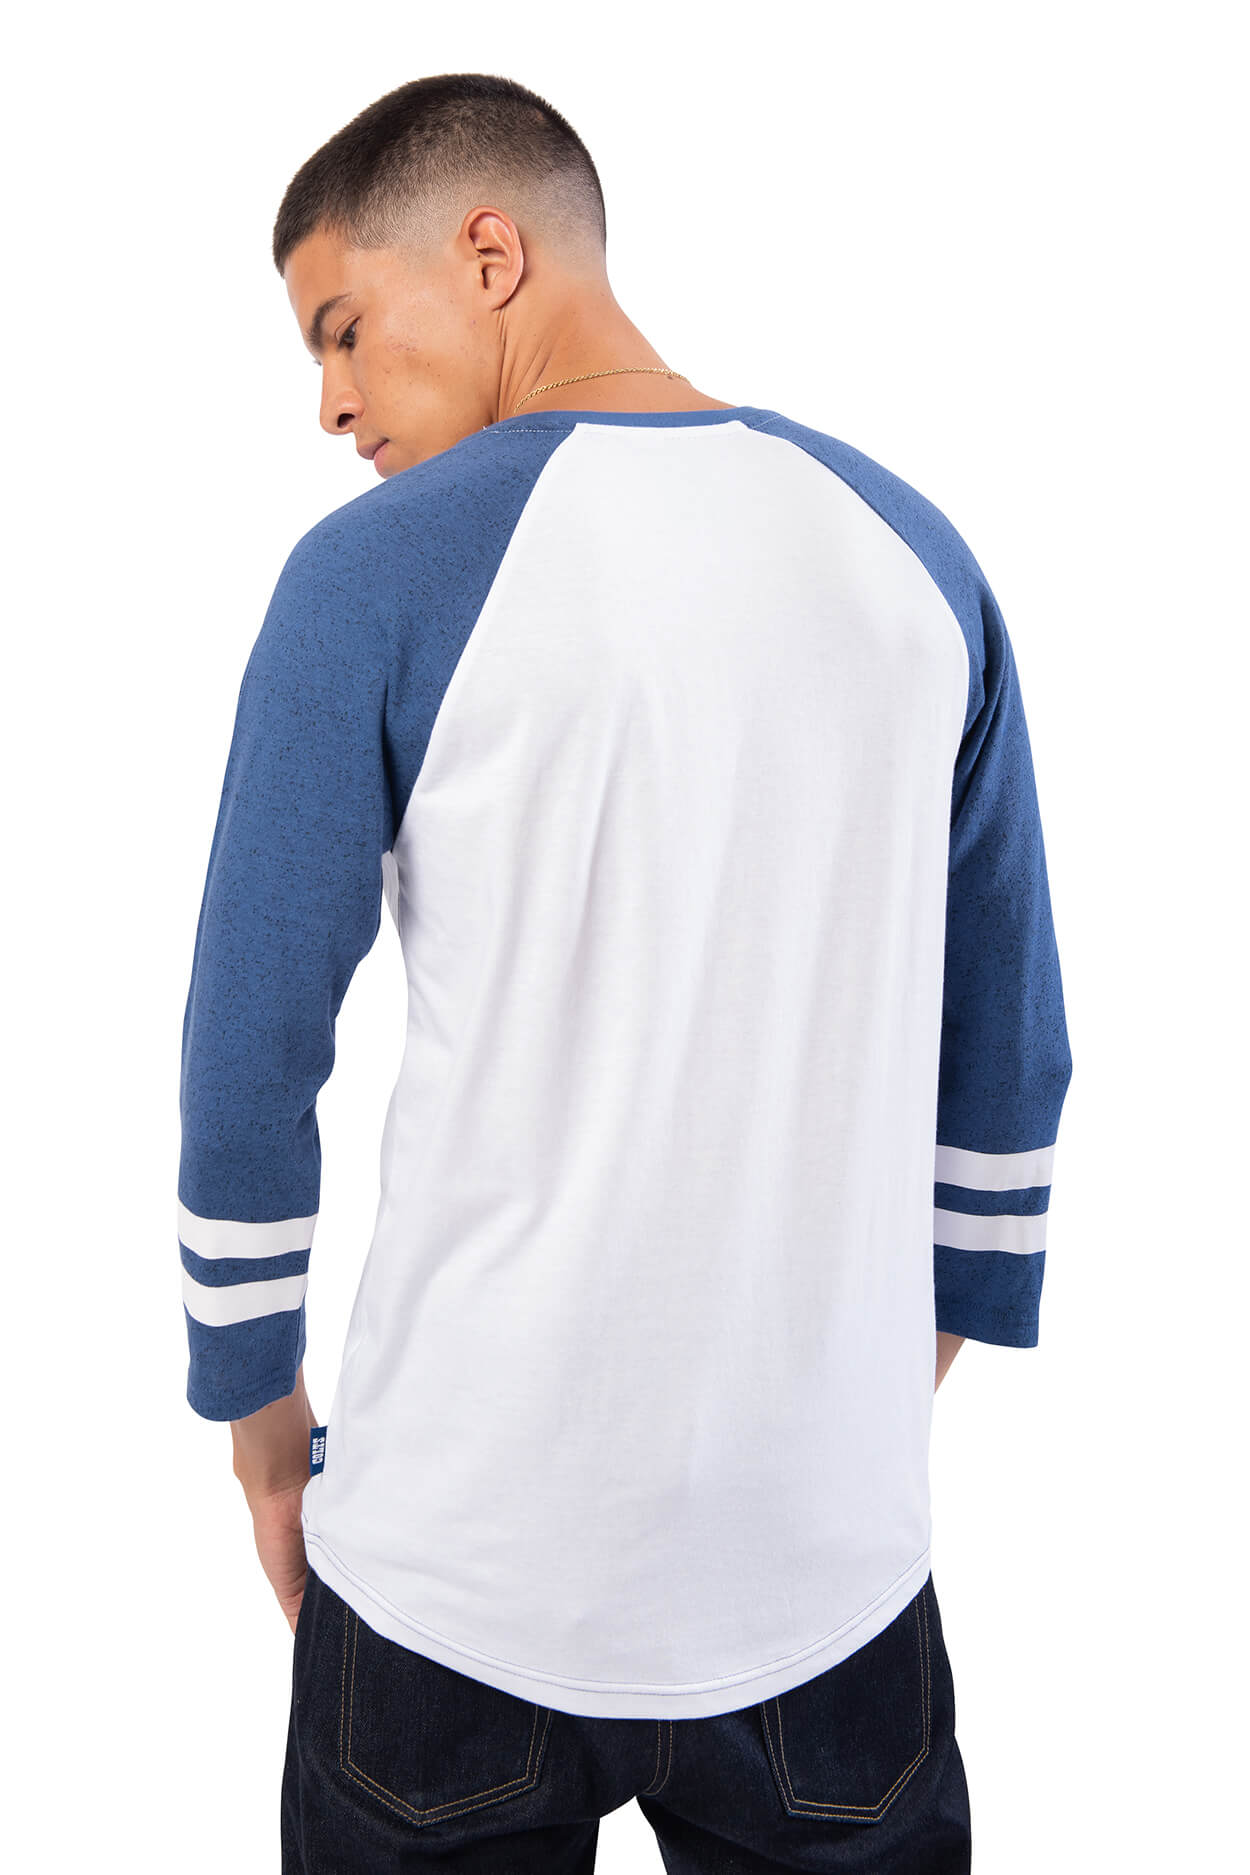 NFL Indianapolis Colts Men's Baseball Tee|Indianapolis Colts